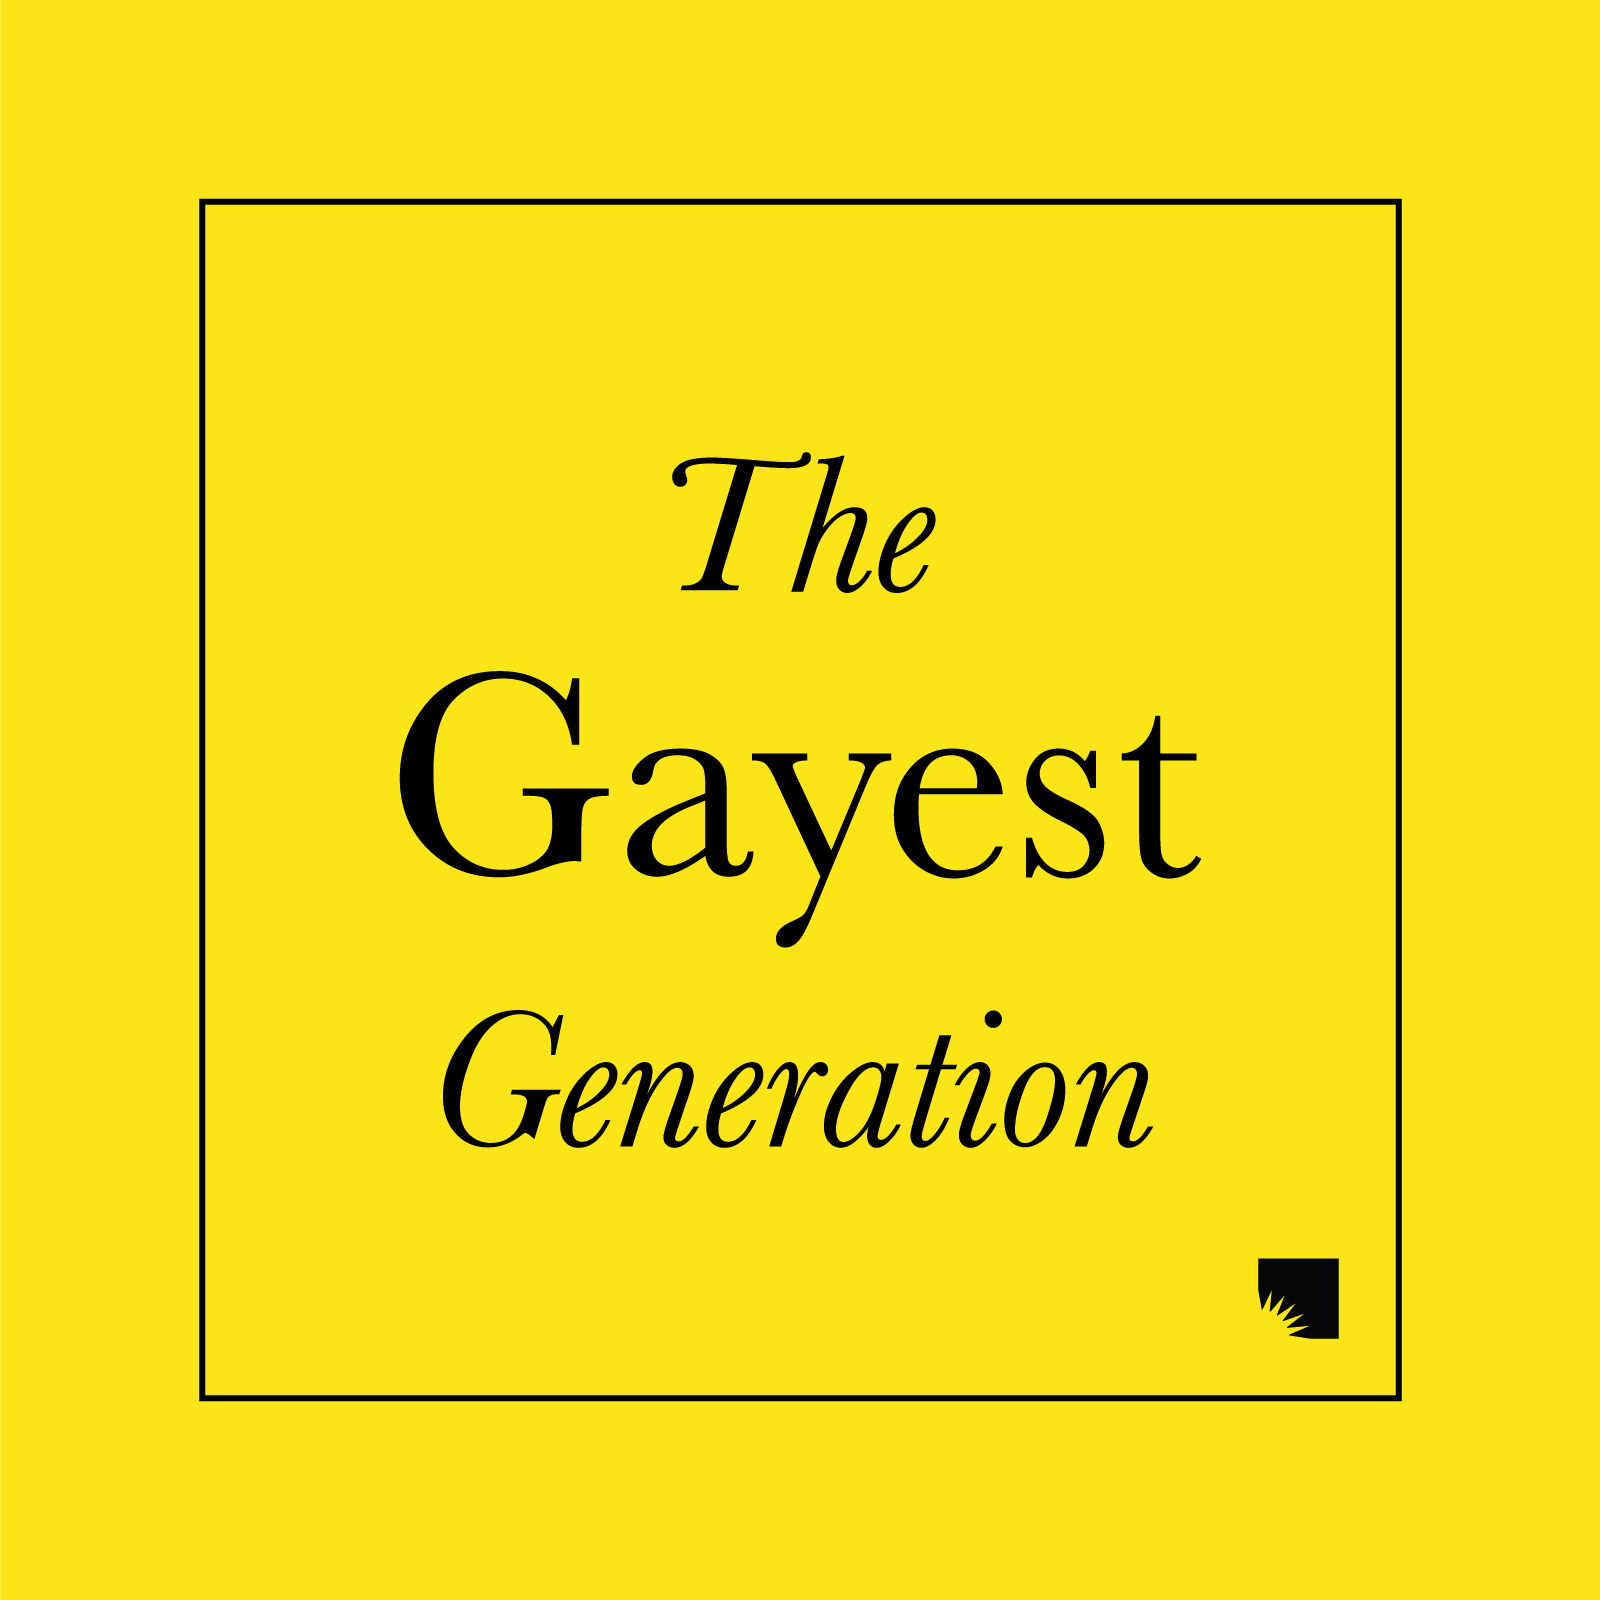 Promotional image for The Gayest Generation Ep. 3 - Bob Enszer and Rick Farrand podcast